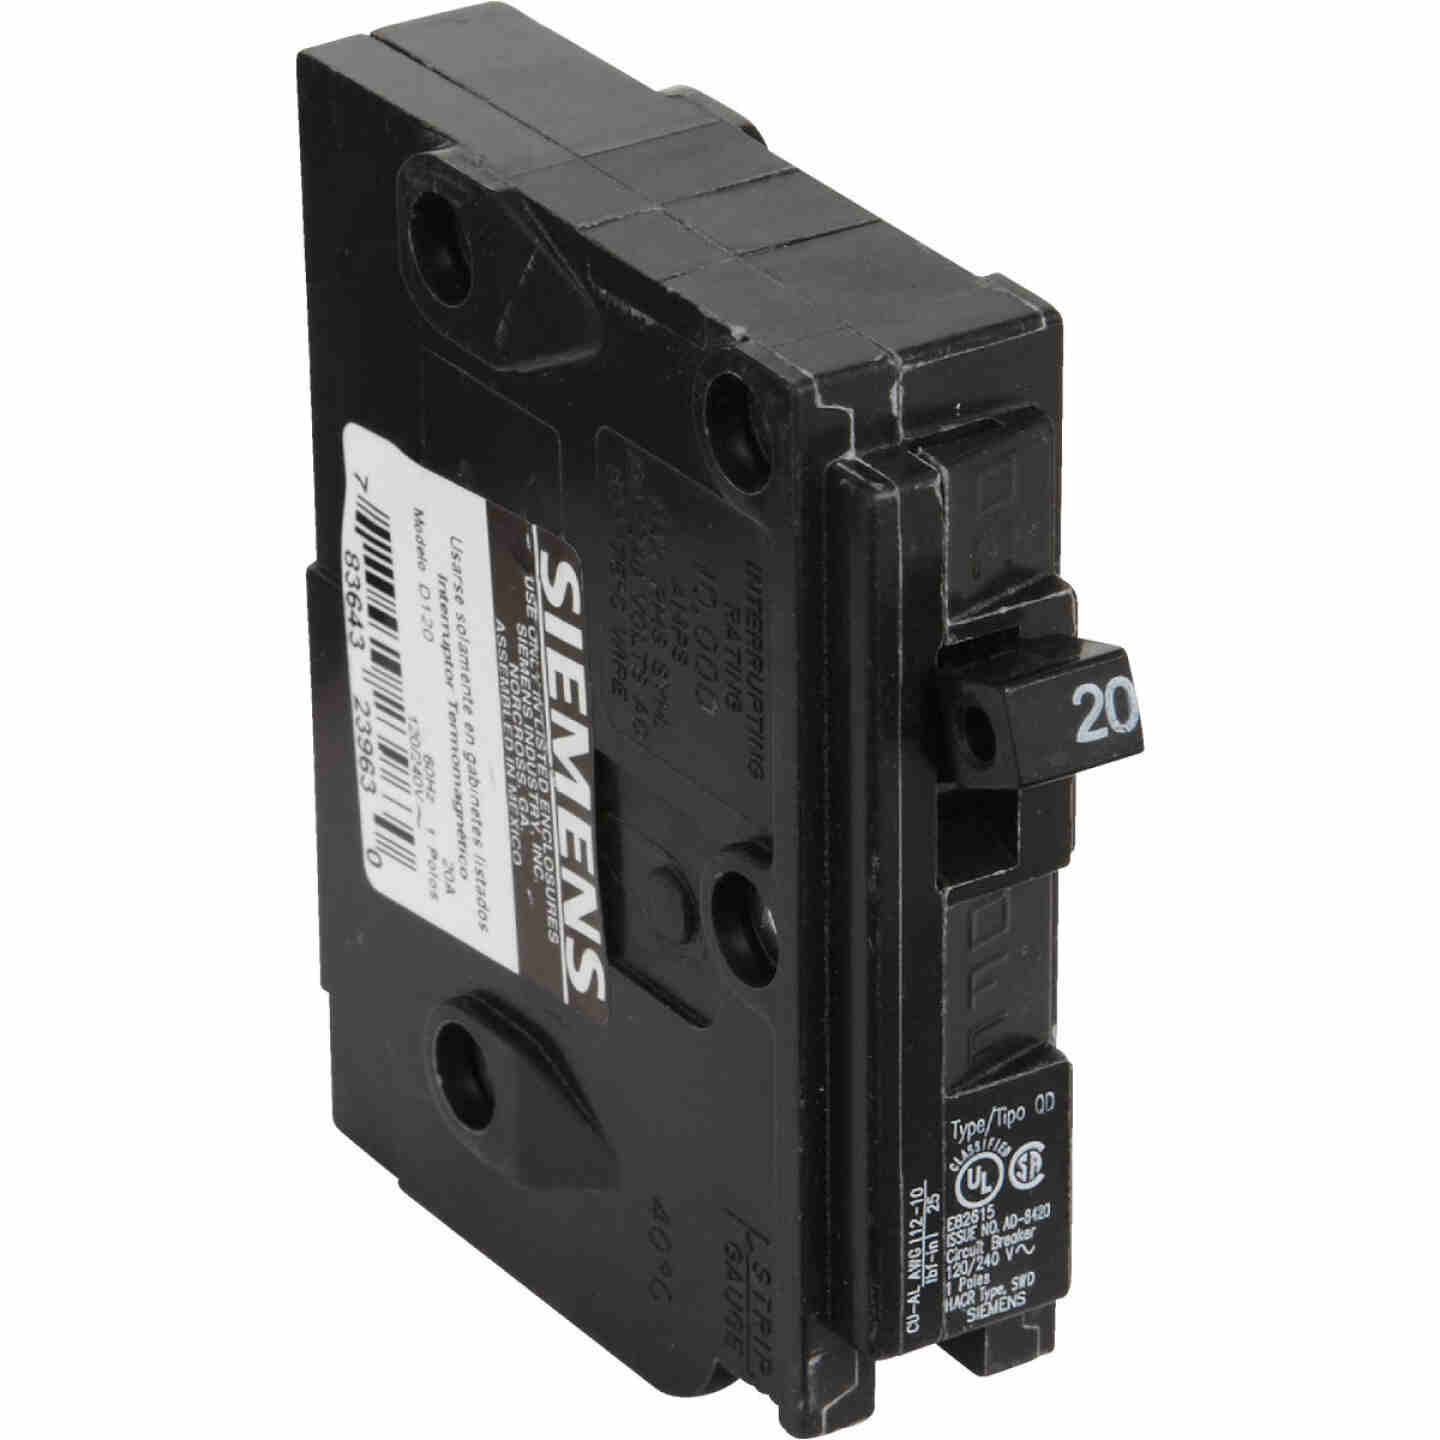 Connecticut Electric 20A Single-Pole Standard Trip Packaged Replacement Circuit Breaker For Square D Image 3